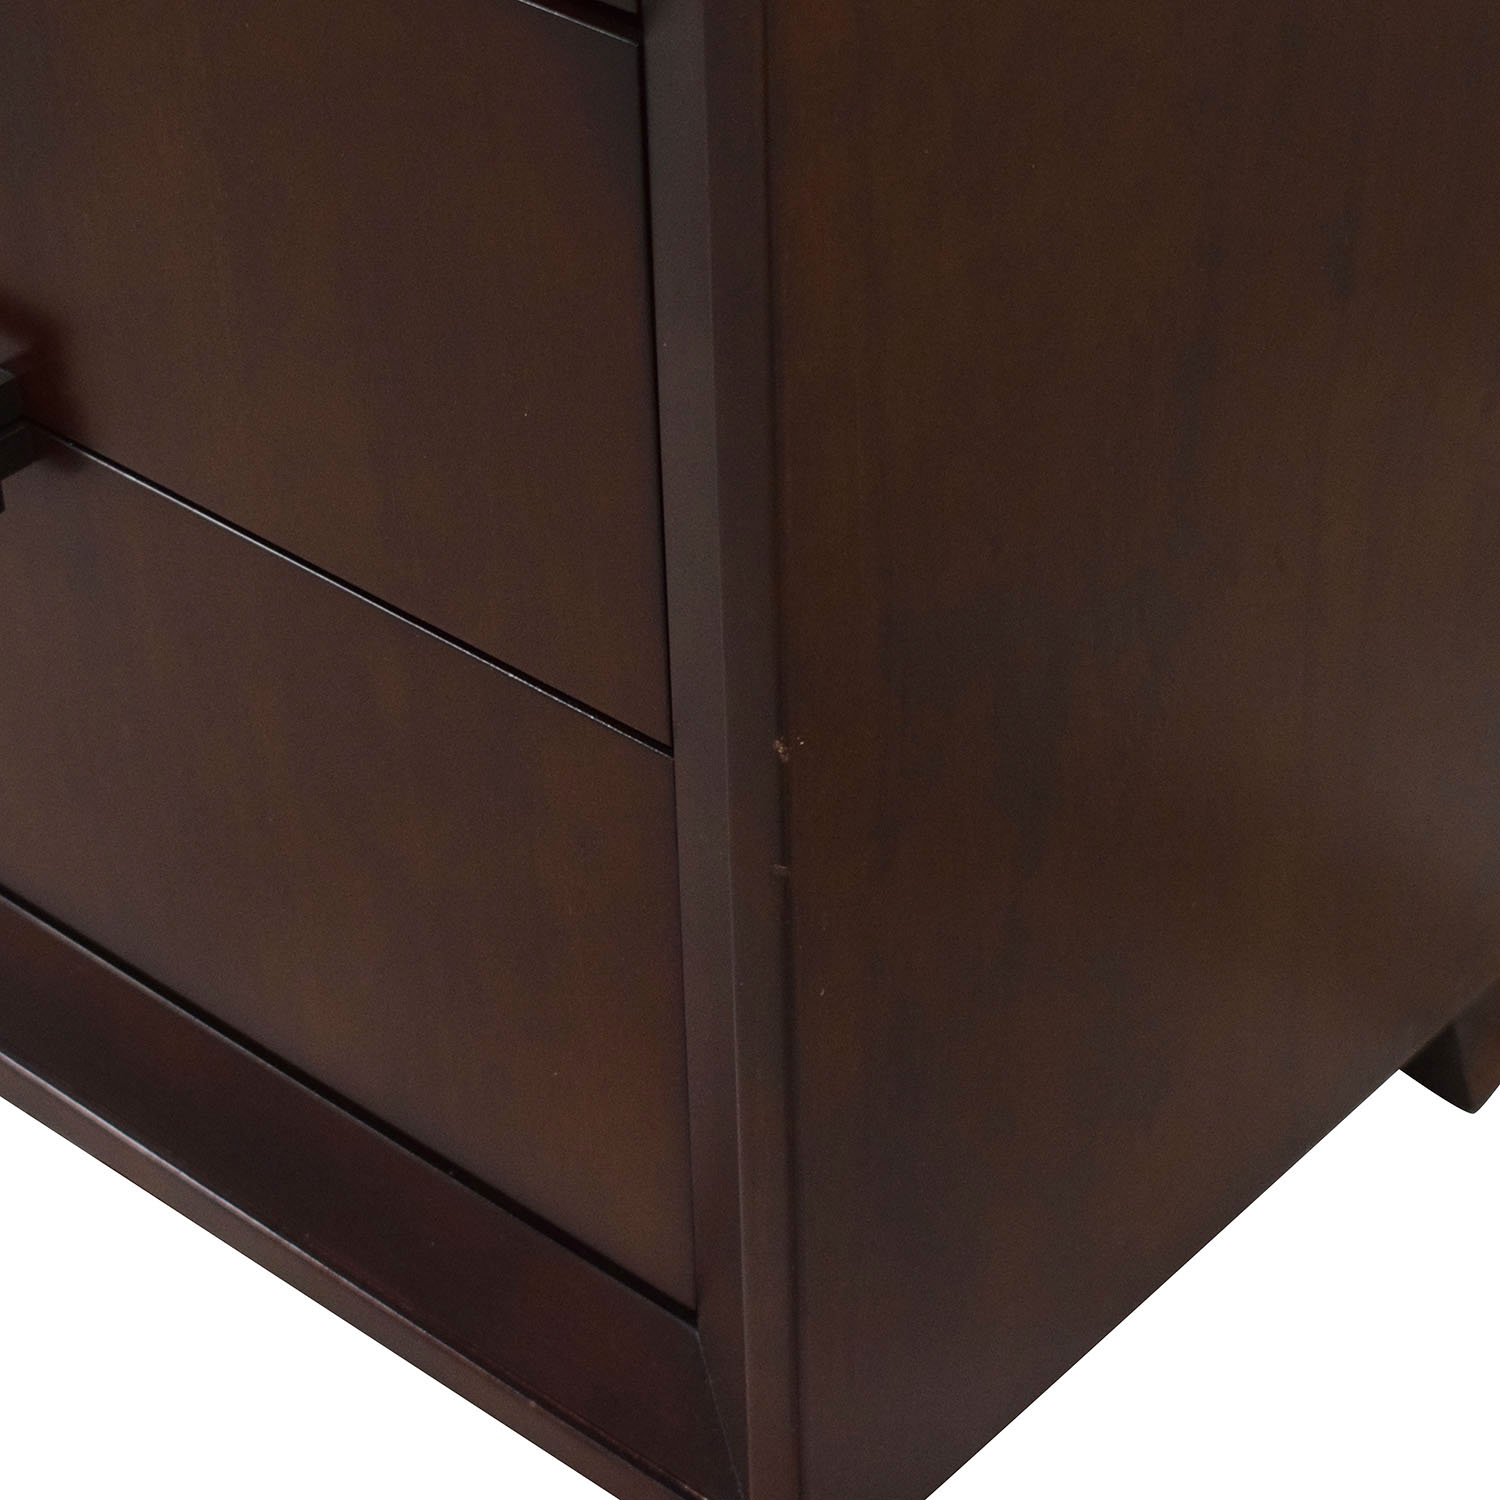 Casana Furniture Casana Furniture Vista Nightstand second hand